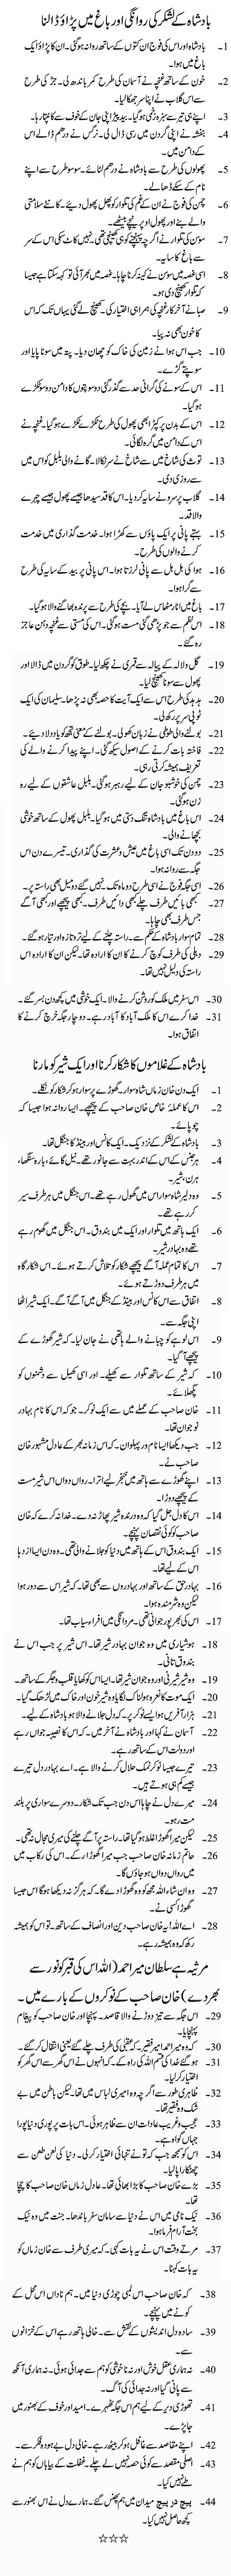 Urdu translation of Qazi Nur Muhammad's account (in Persian) of Ahmad Shah Durrani's two month stay at Pinjore and the encounter with a tiger in the surrounding forests